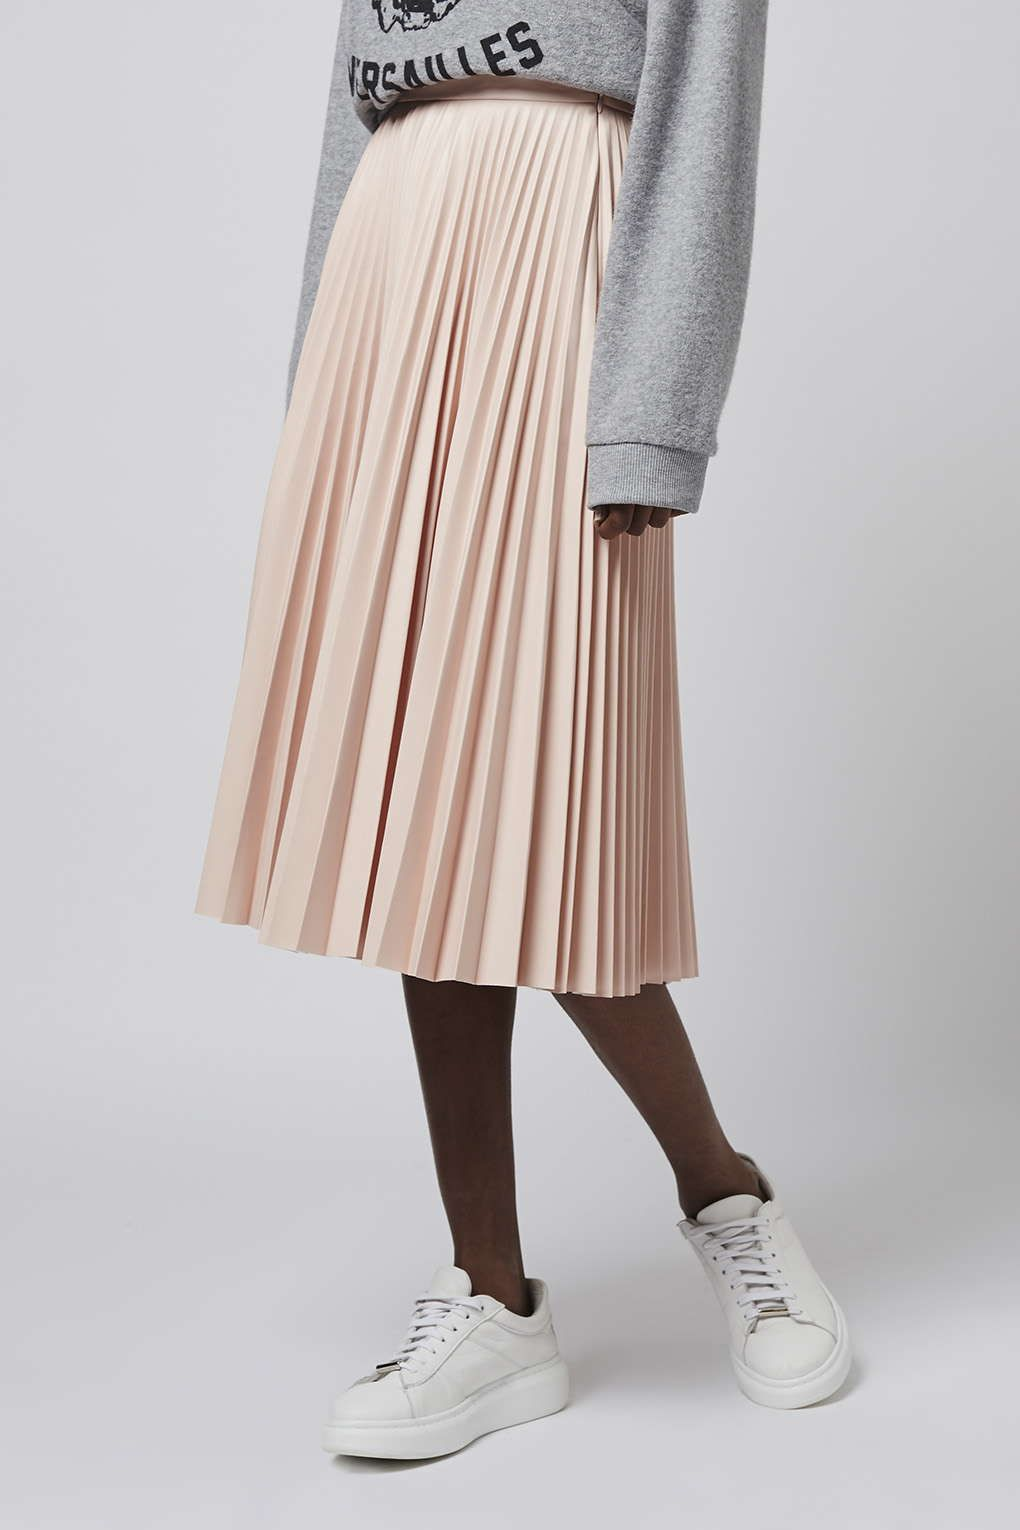 5eea52727 PU Pleated Midi Skirt - Topshop | Style. | Topshop skirts, Pleated ...